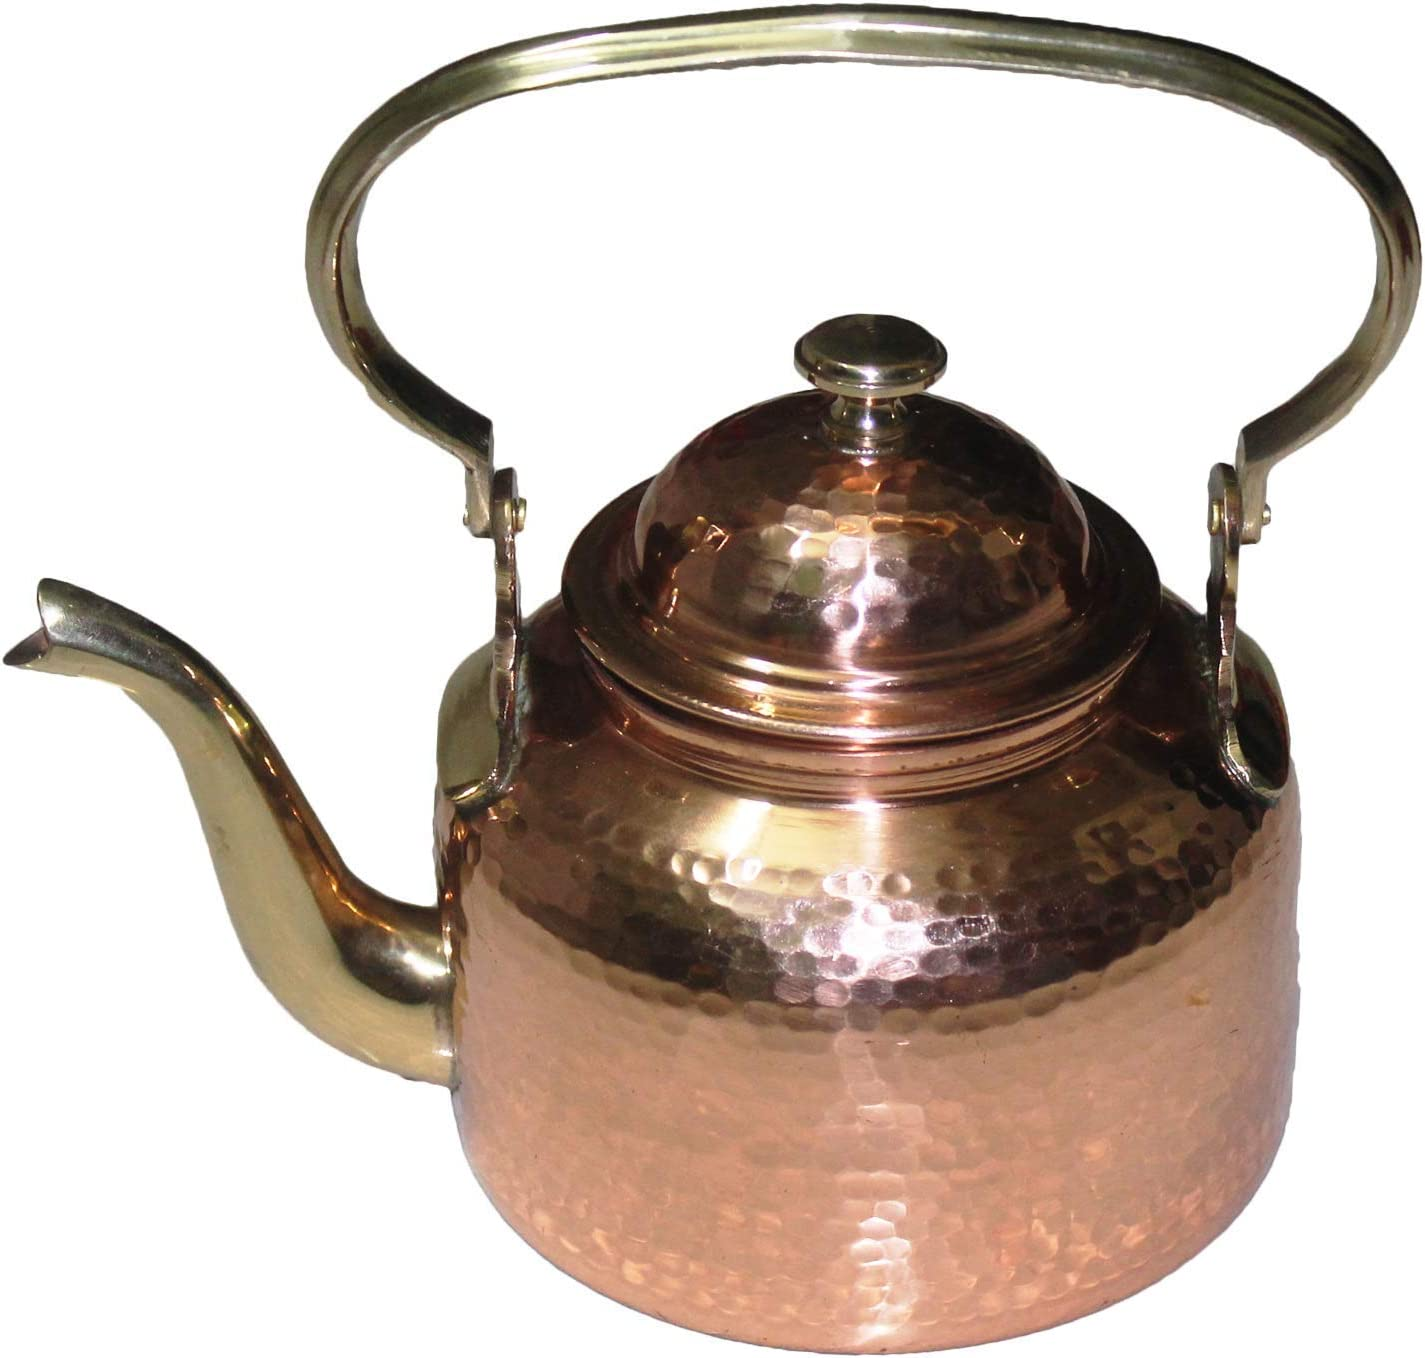 Hammered Tea Kettle Classic Espresso Home Coffee Pouring Max 68% OFF for Pot Branded goods